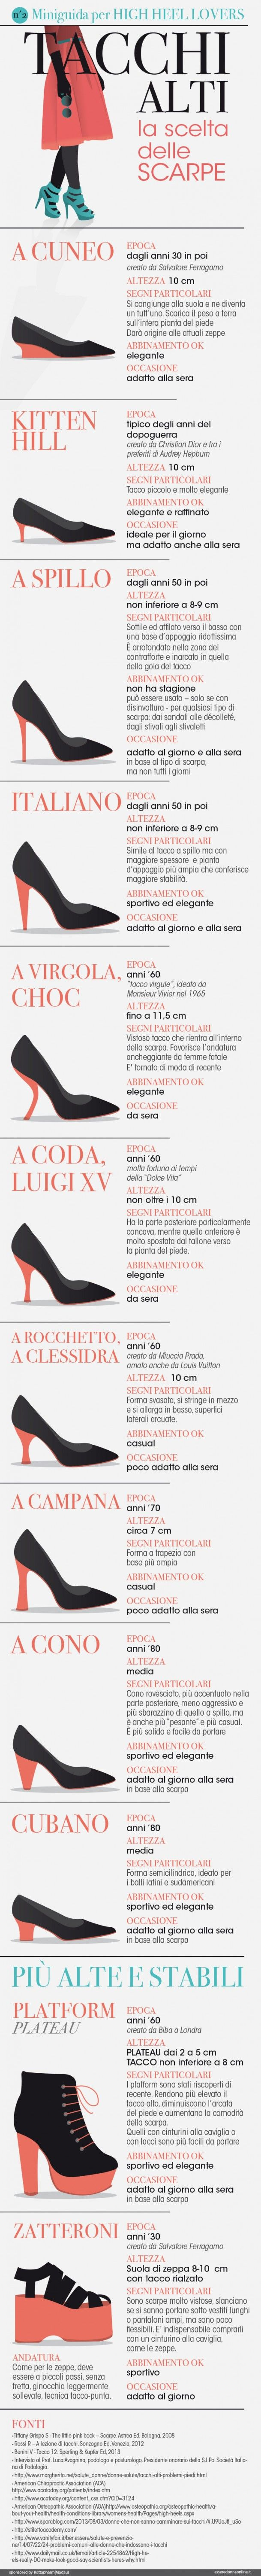 Miniguida per High Heels Lovers: la scelta delle scarpe for Esseredonnaonline.it design by Kleland studio di Alice Kle Borghi